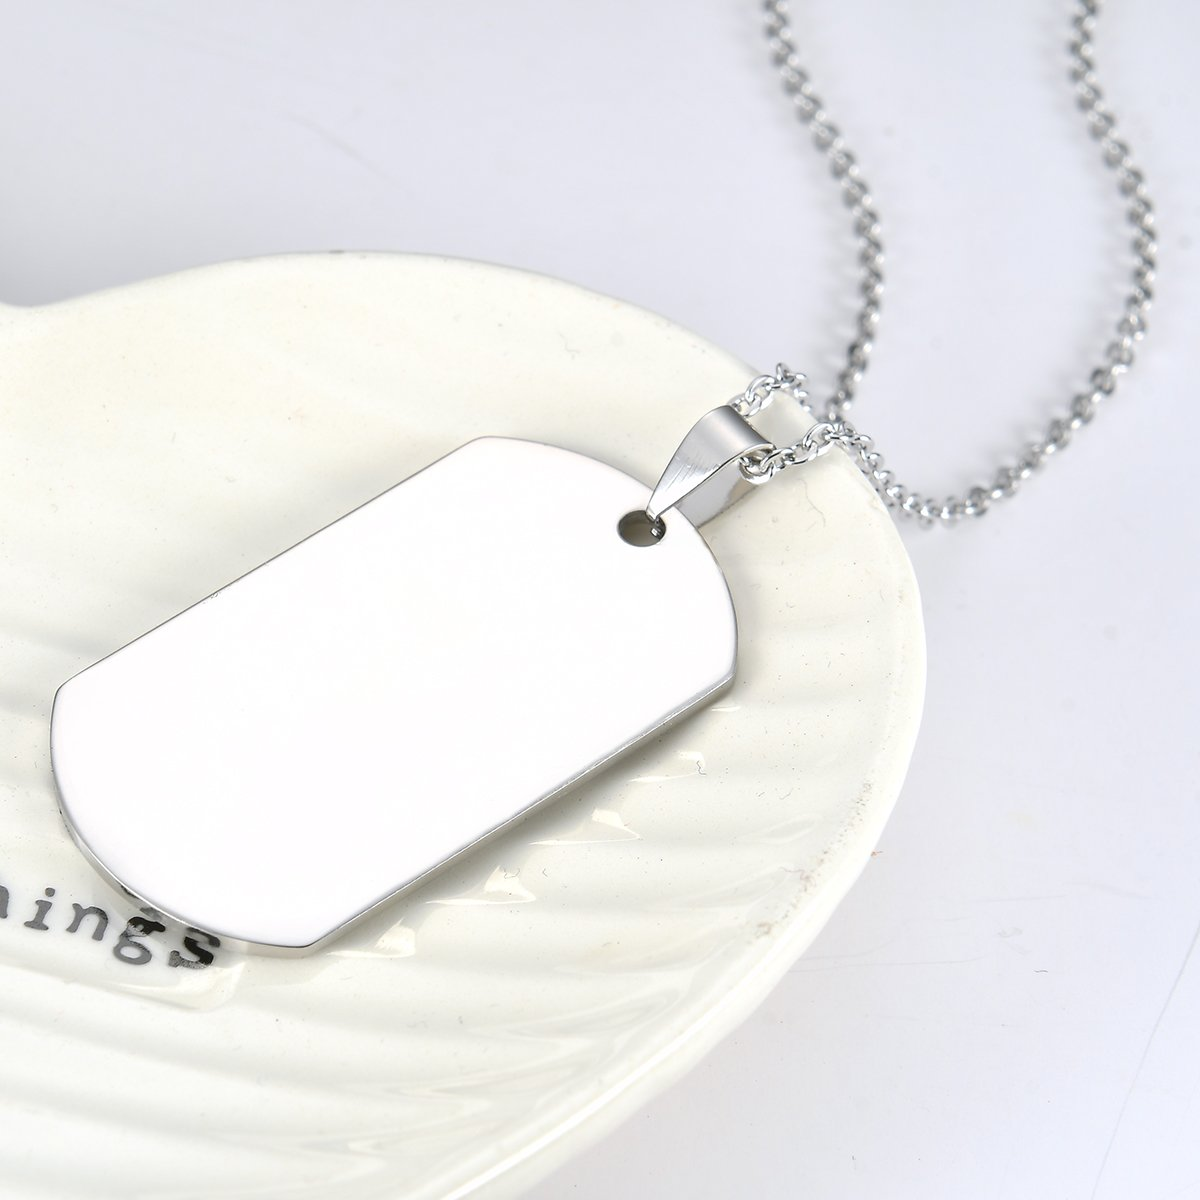 Stainless Steel Dog Tag Letters ''To my son....love mom'' Pendant Necklace,Inspirational Gifts For Son Jewelry by danjie (Image #5)